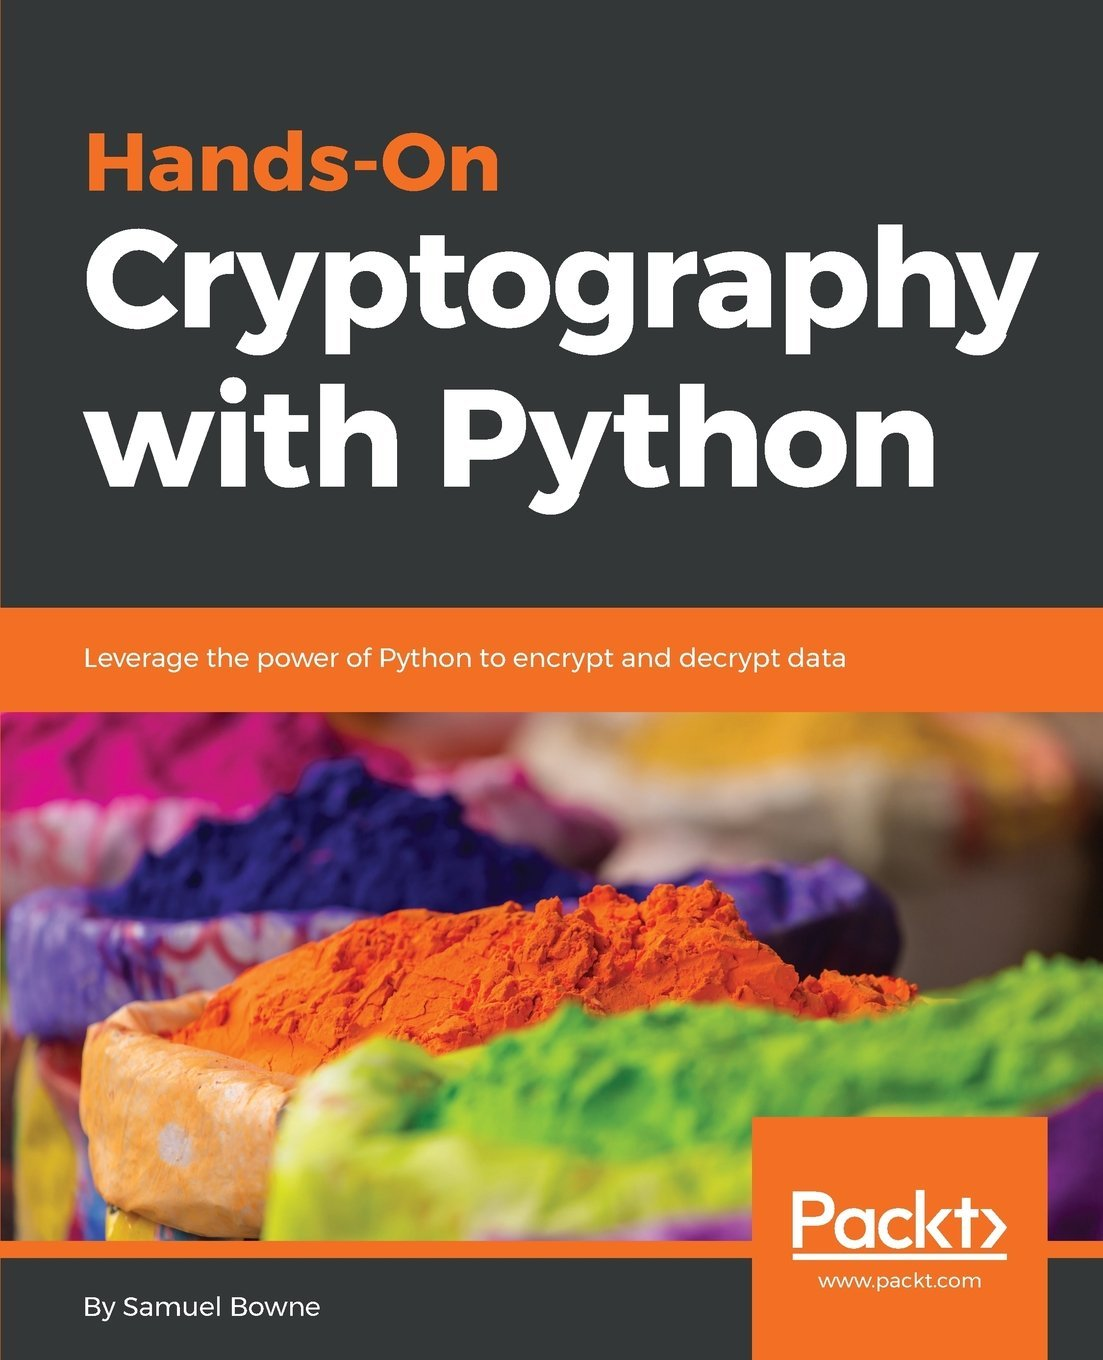 Hands-On Cryptography with Python: Leverage the power of